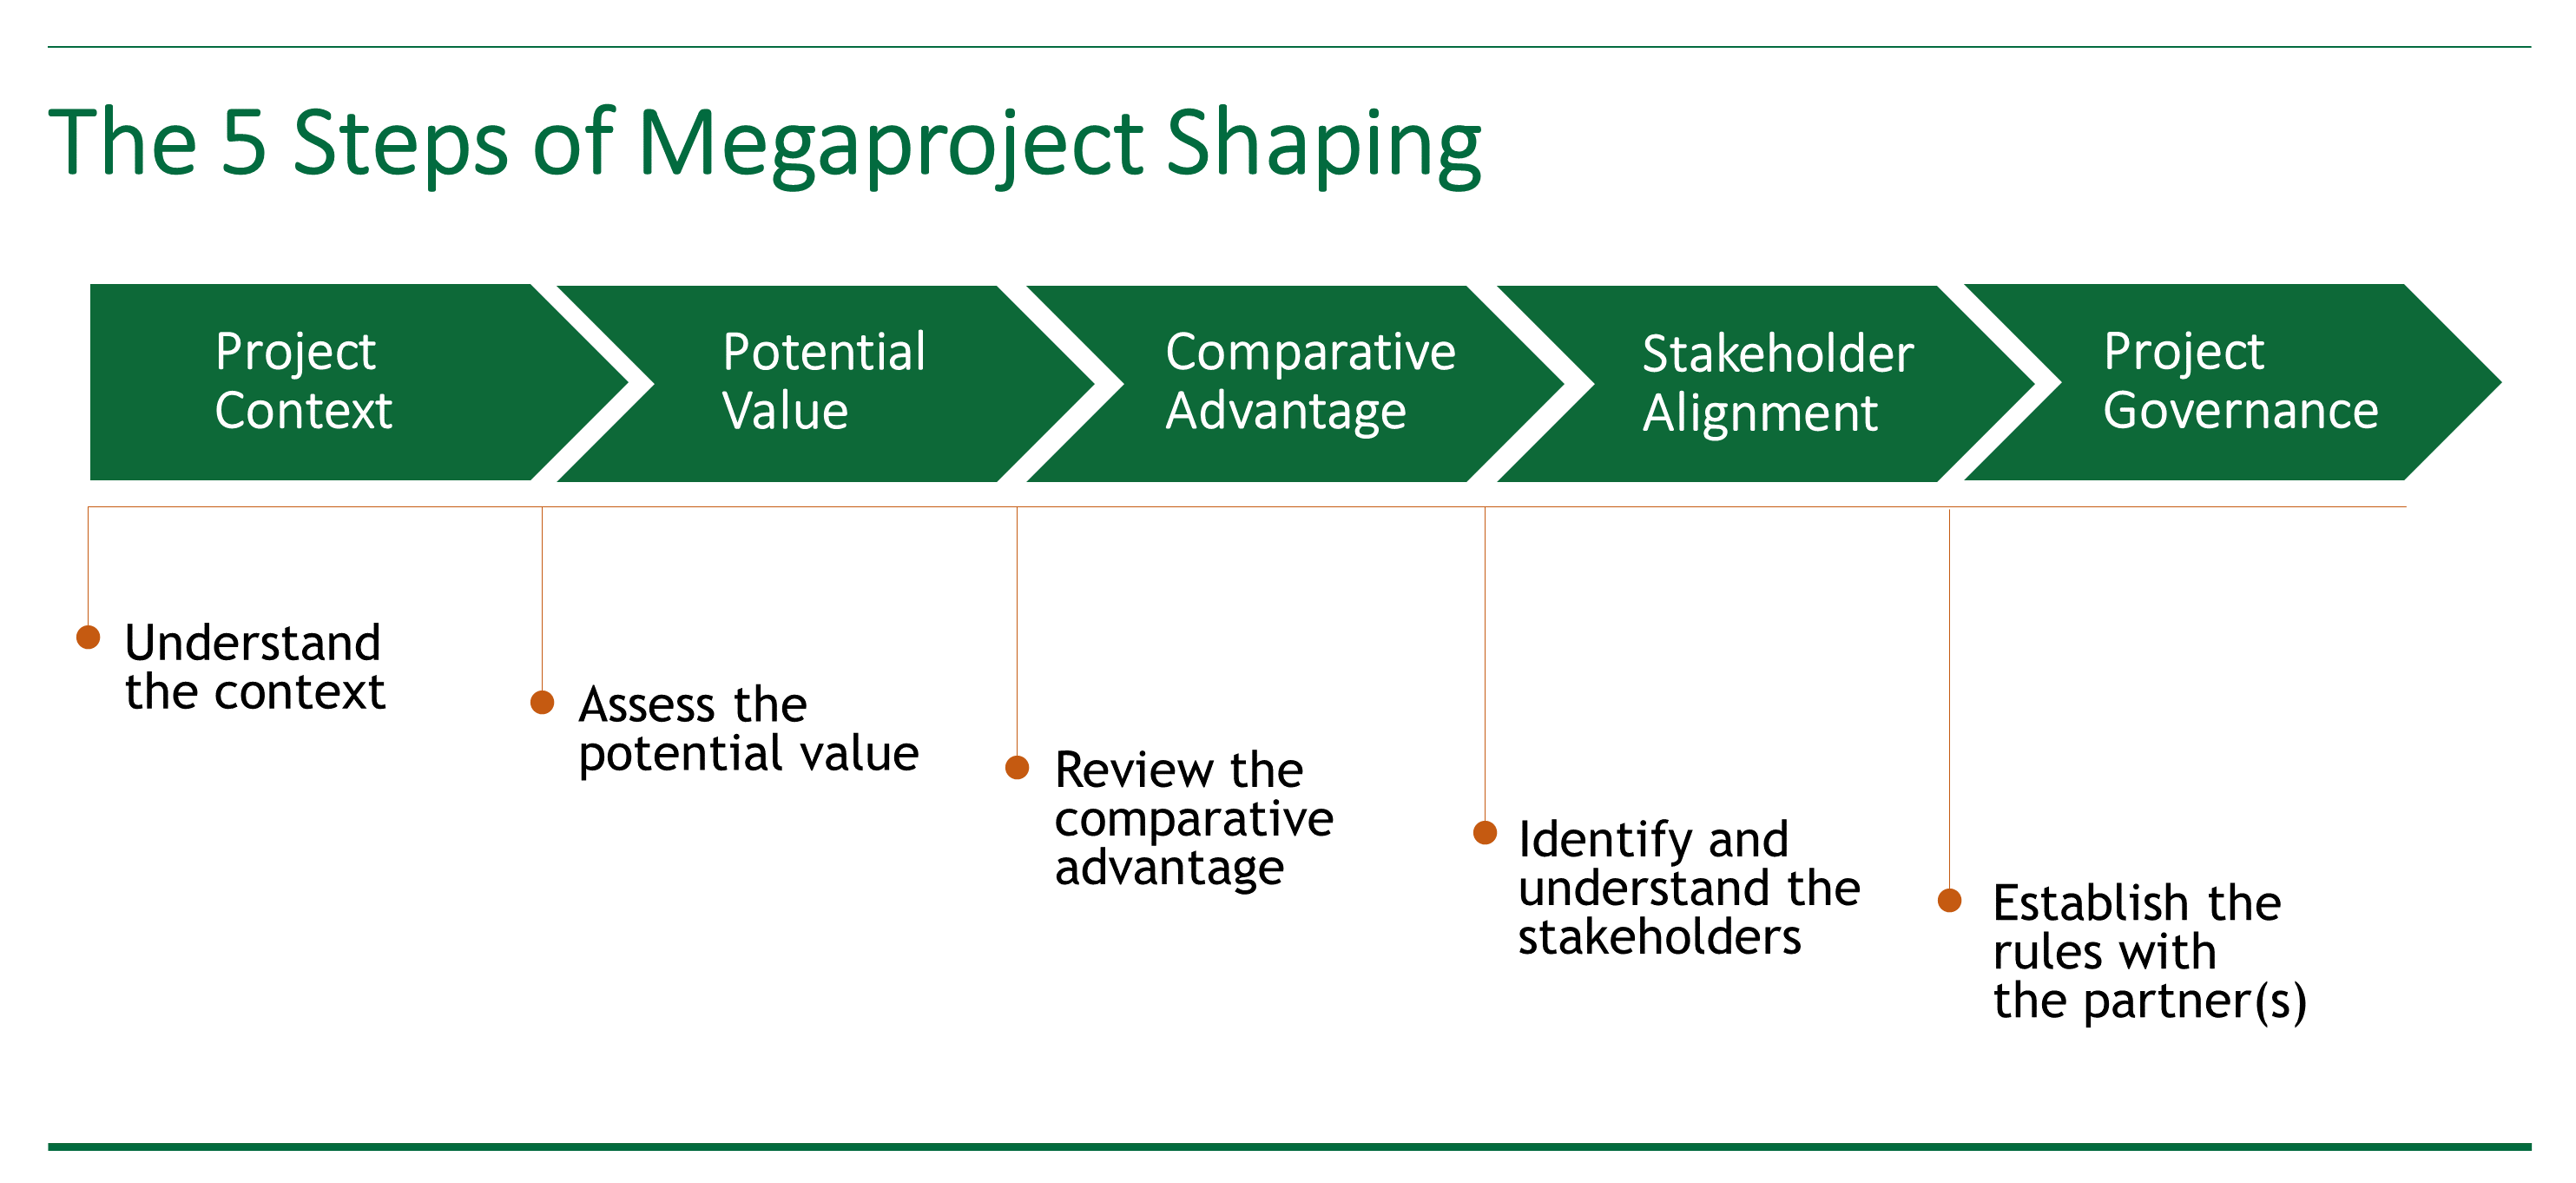 Chart outlining the five steps of opportunity shaping for megaprojects.